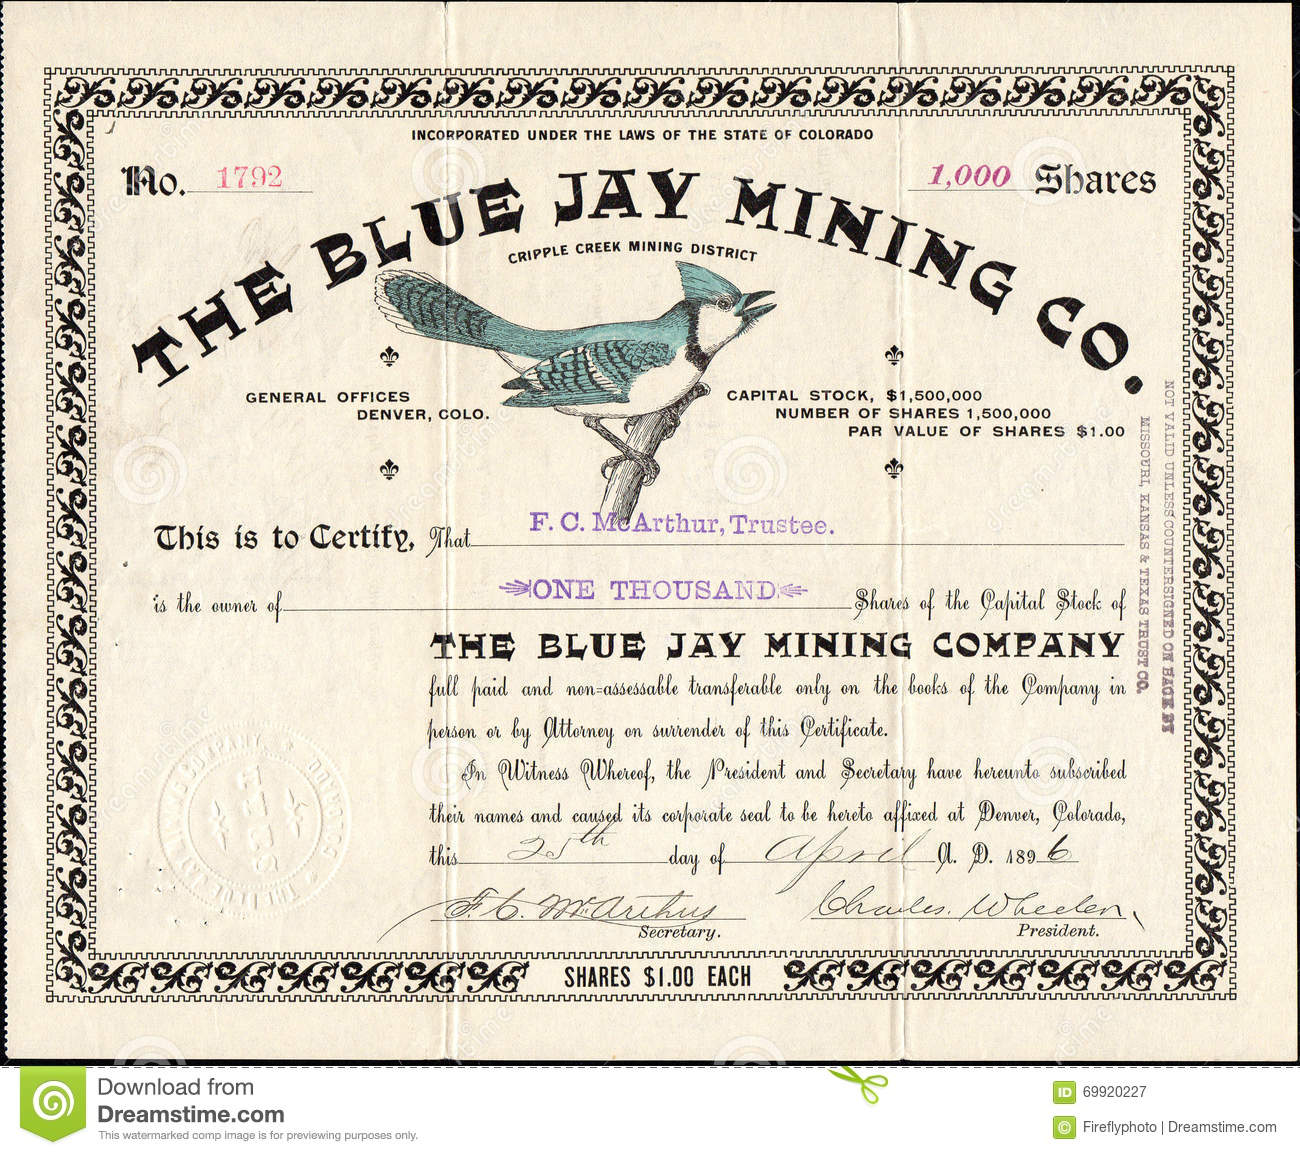 1896 THE BLUE JAY MINING COMPANY Stock Certificate.